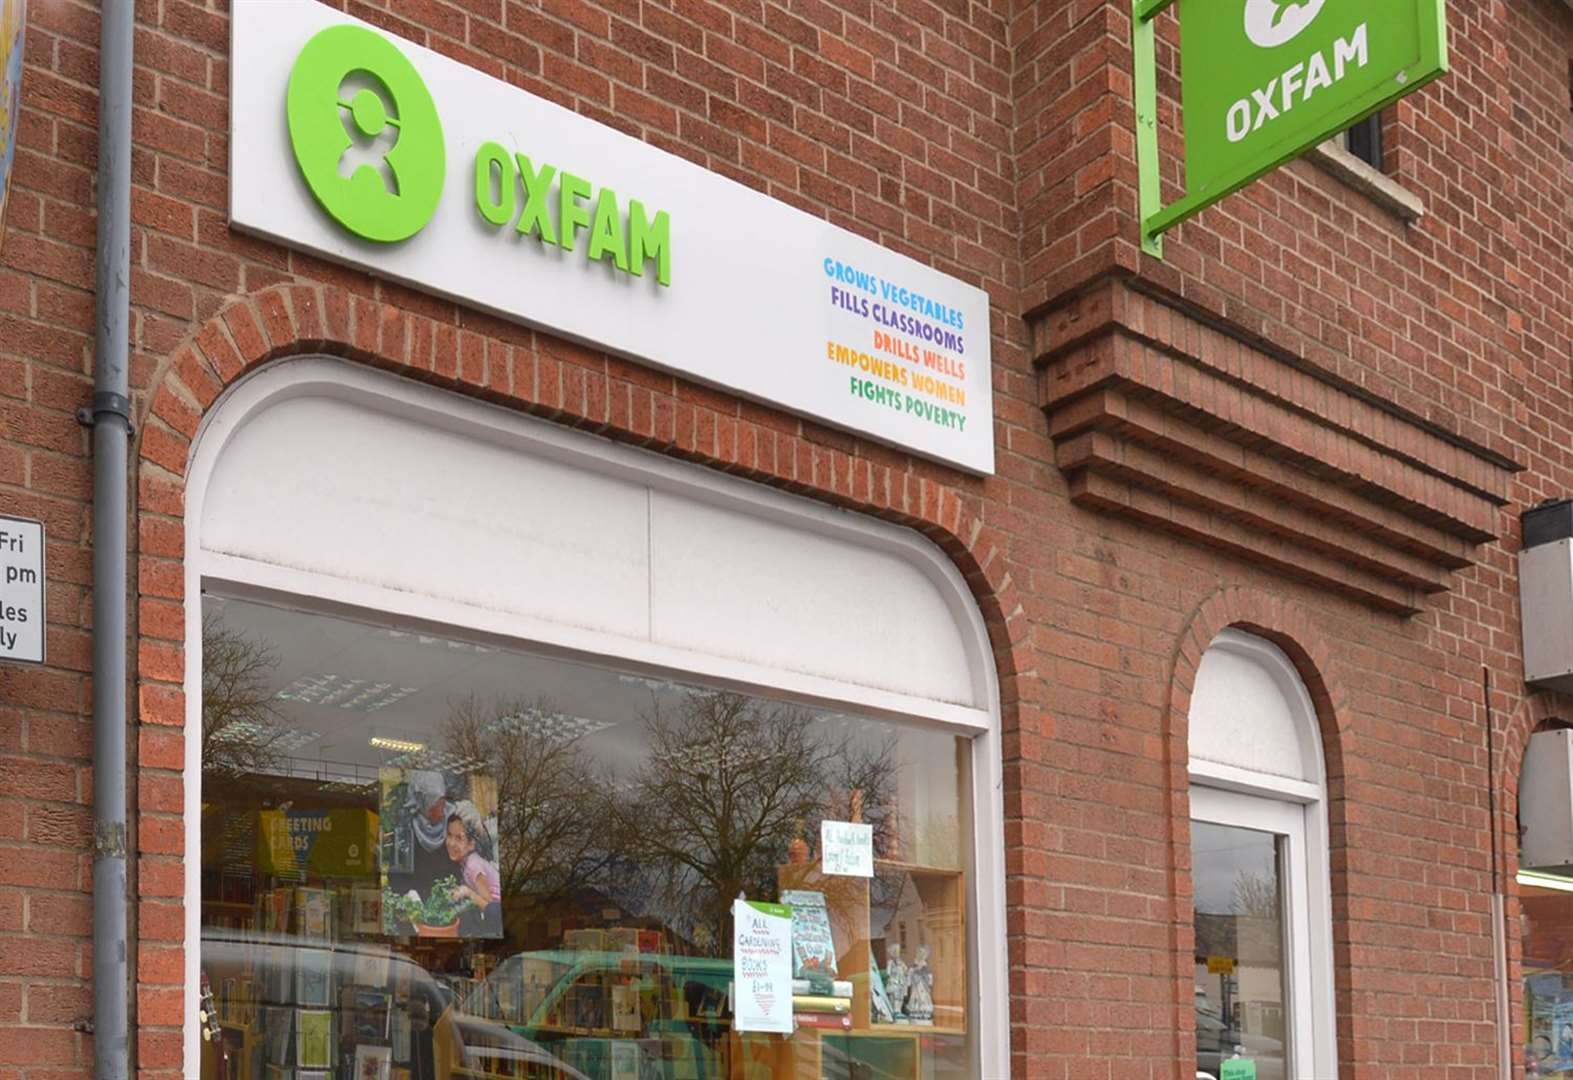 Newmarket's Oxfam to shut its town-centre shop after 35 years